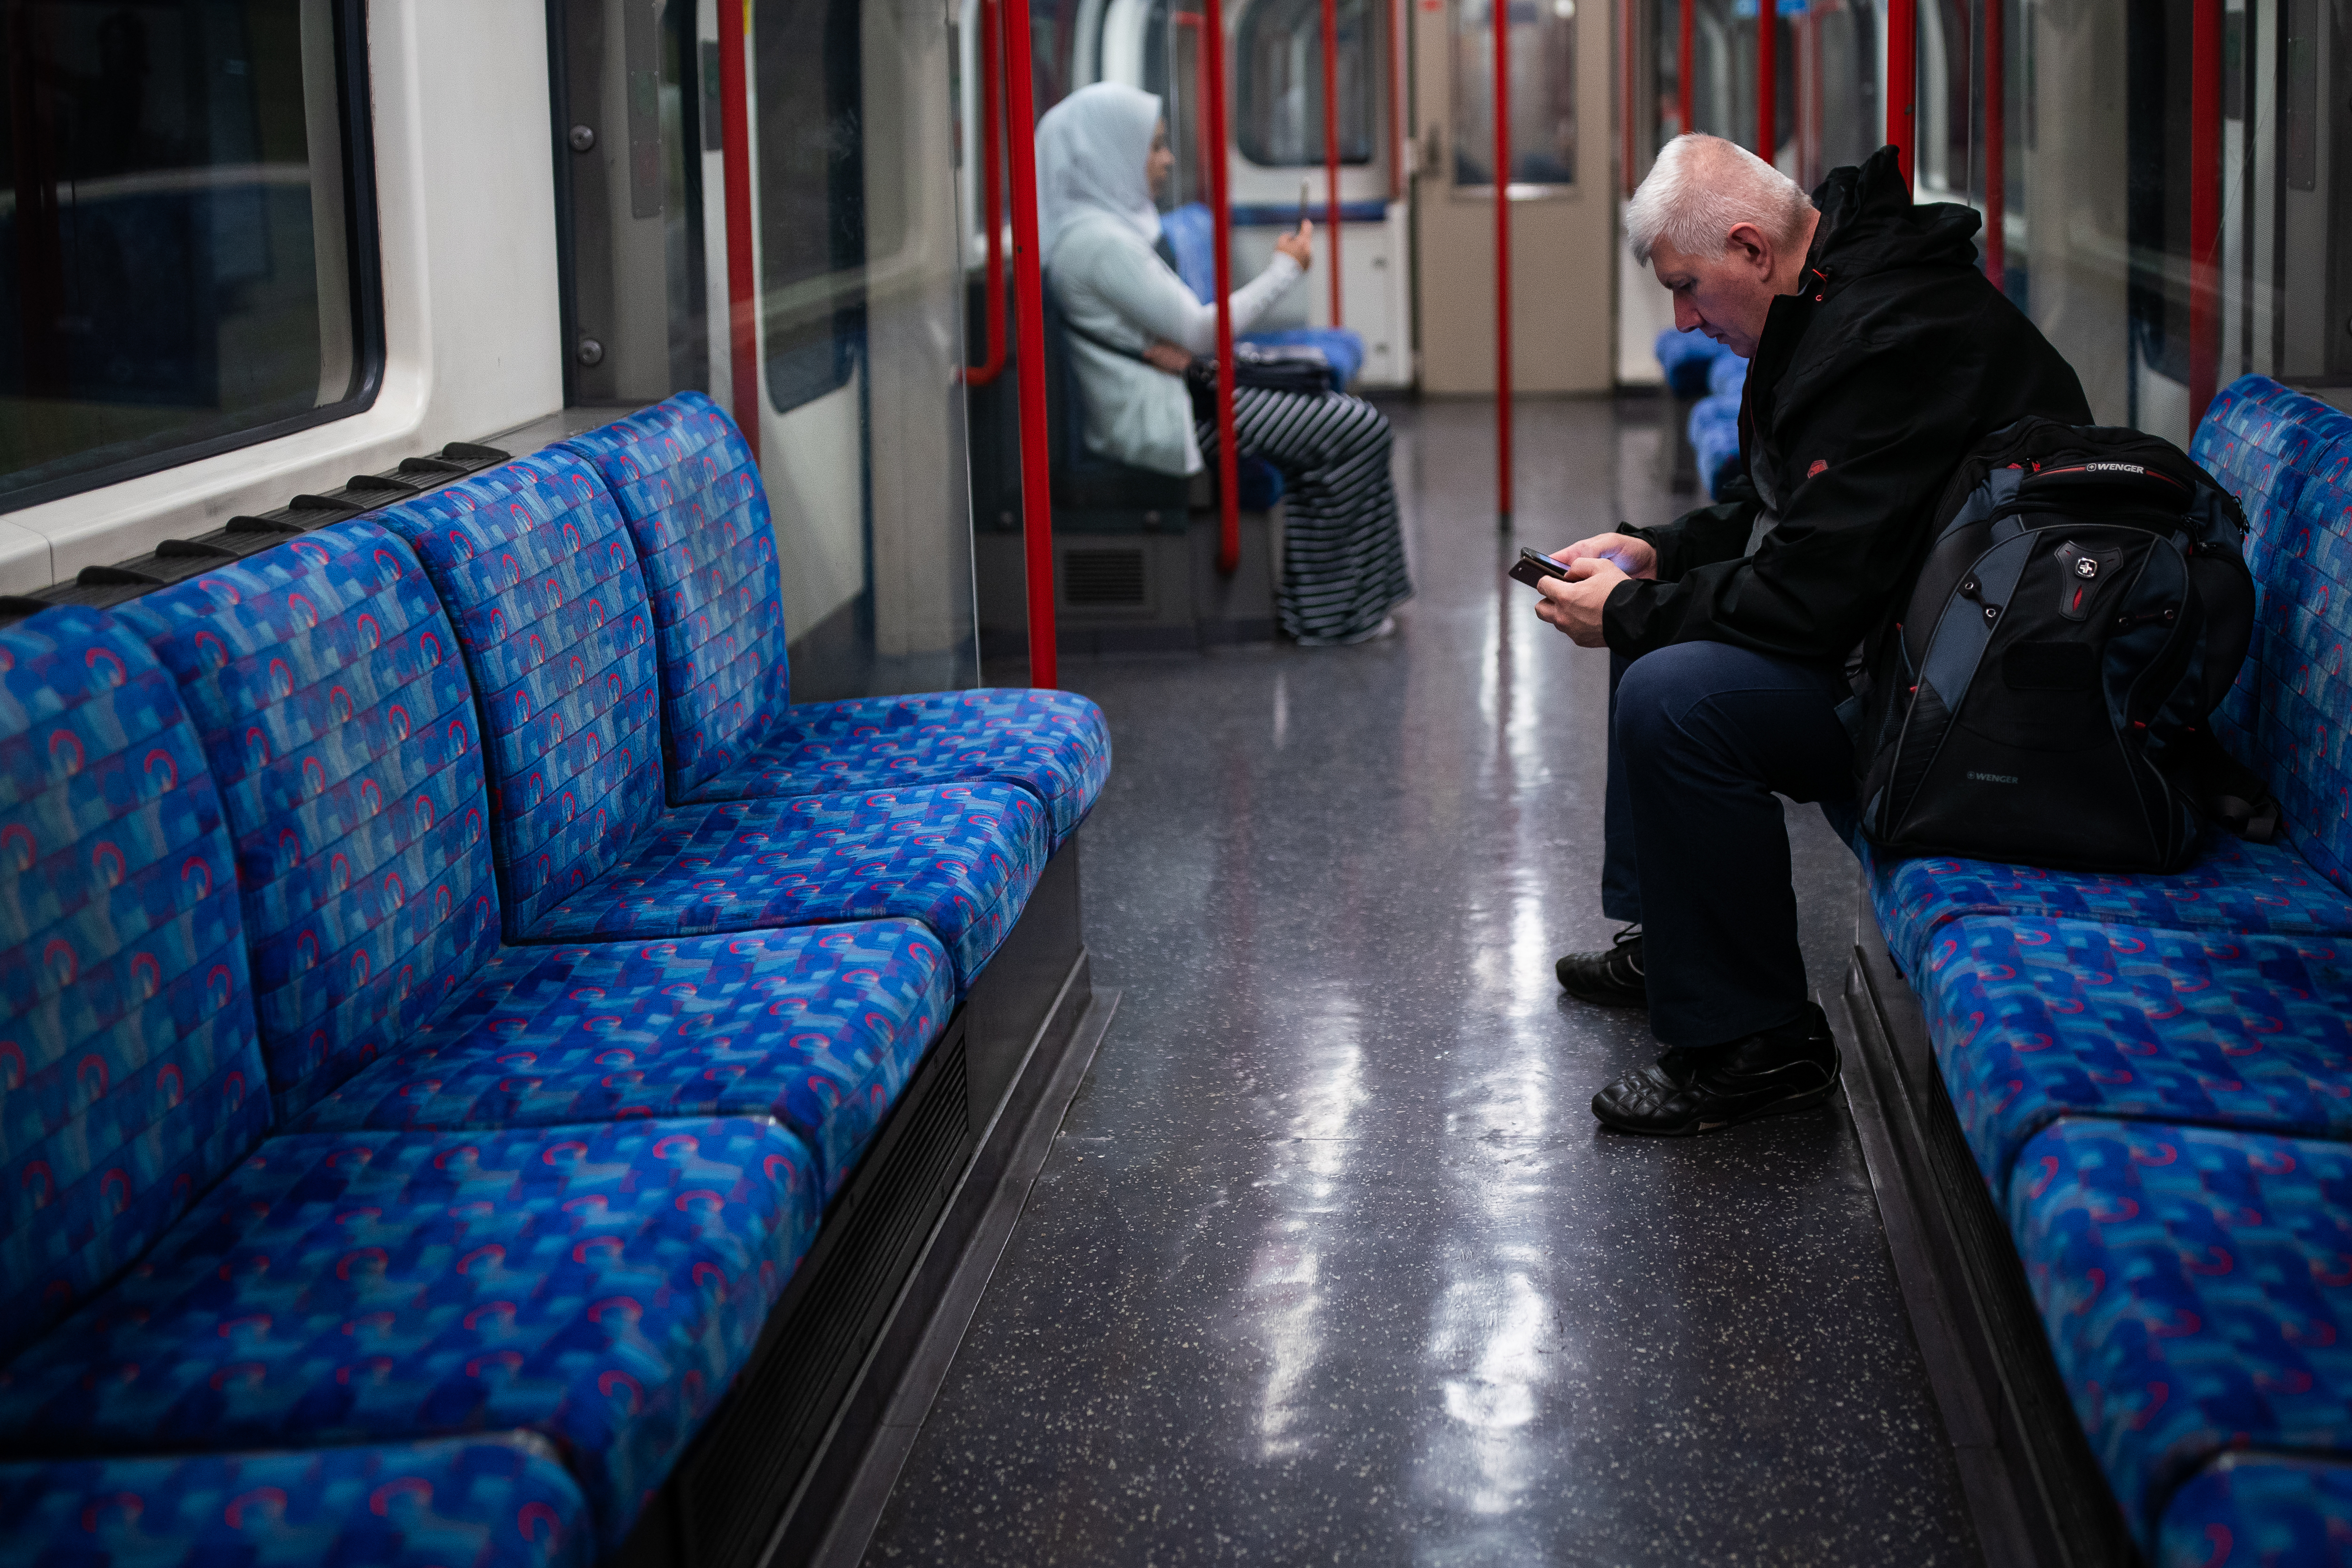 Members of the public stay socially distant on the Central Line as the UK continues in lockdown to help curb the spread of the coronavirus.